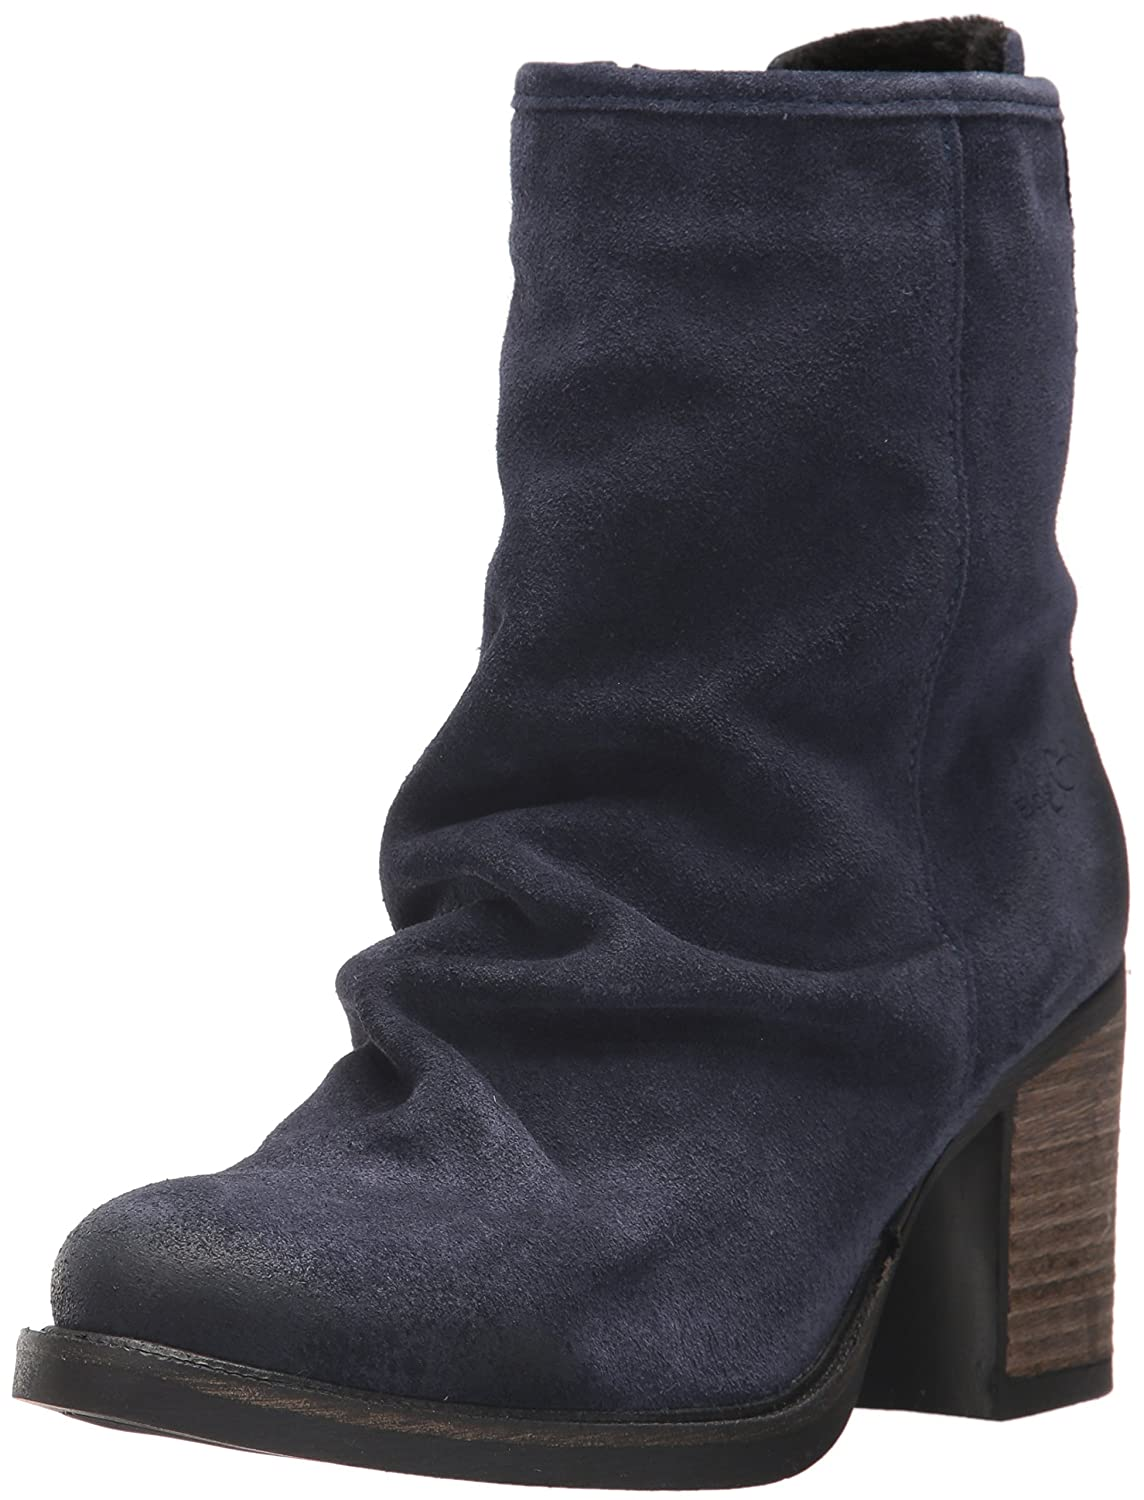 Bos. & Co. Women's Barlow Boot B06WVTS736 38 M EU (7.5-8 US)|Deep Blue Oil Suede